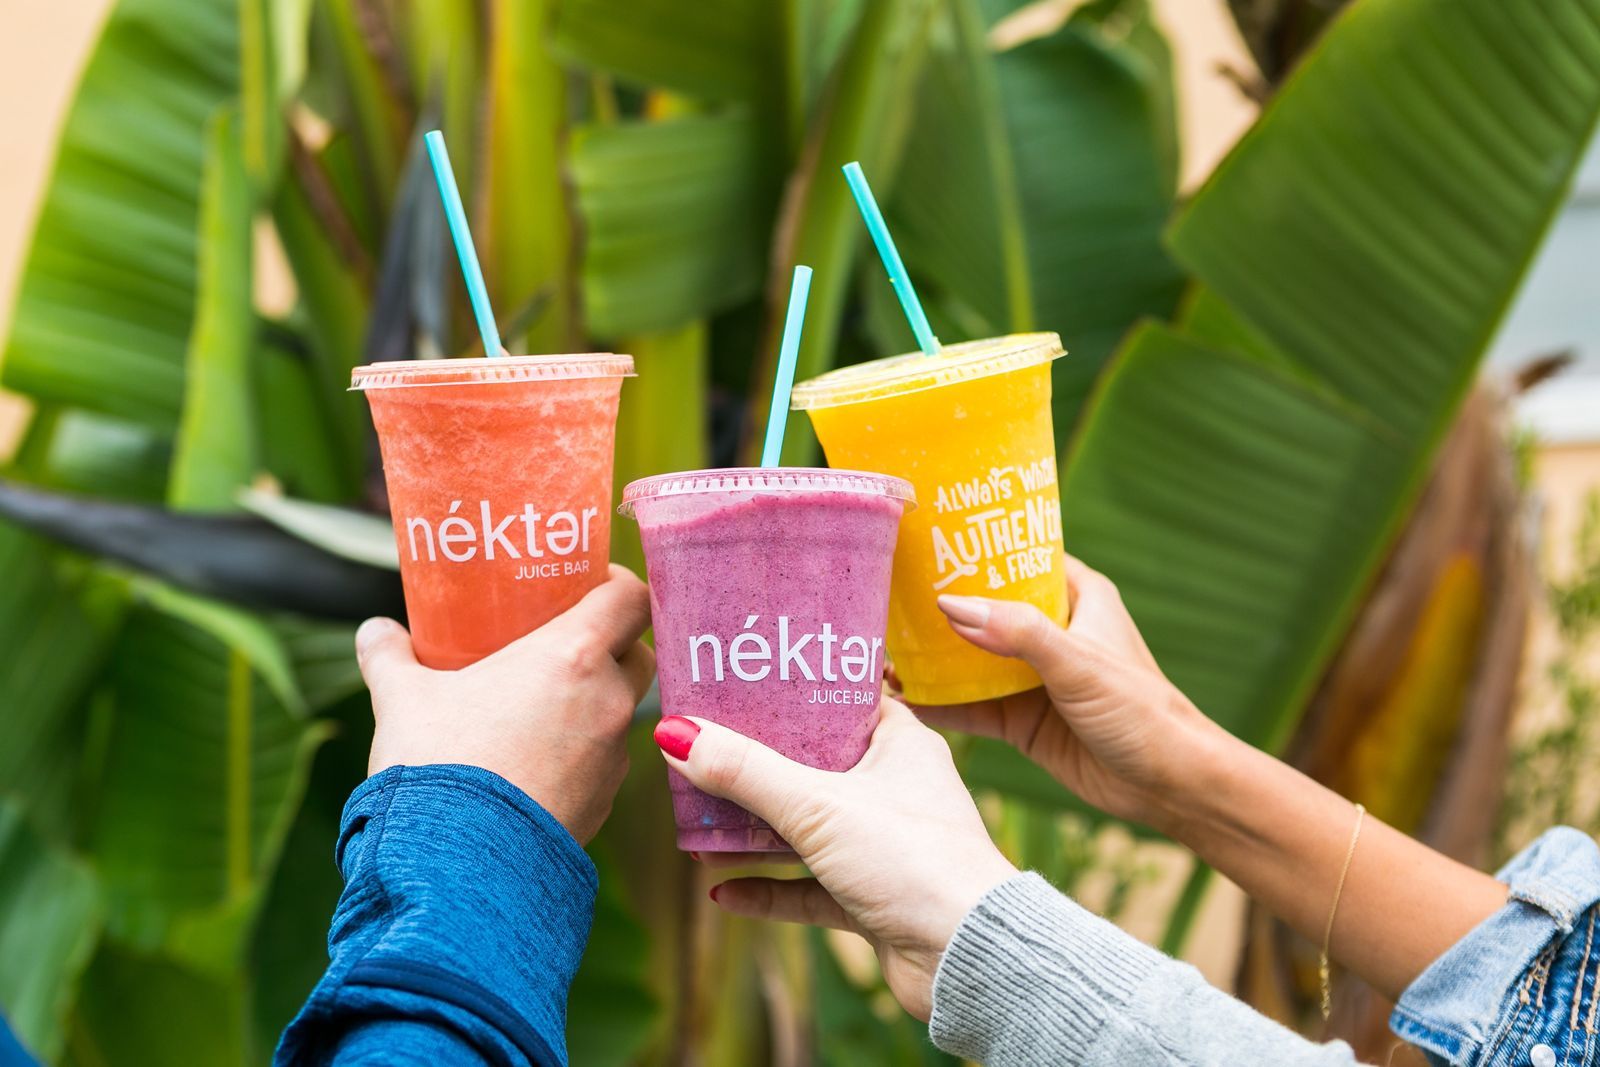 Nékter Juice Bar Celebrates Eight Years and 21.5 Million Fresh Juices, Superfood Smoothies and Acai Bowls Served Since 2010